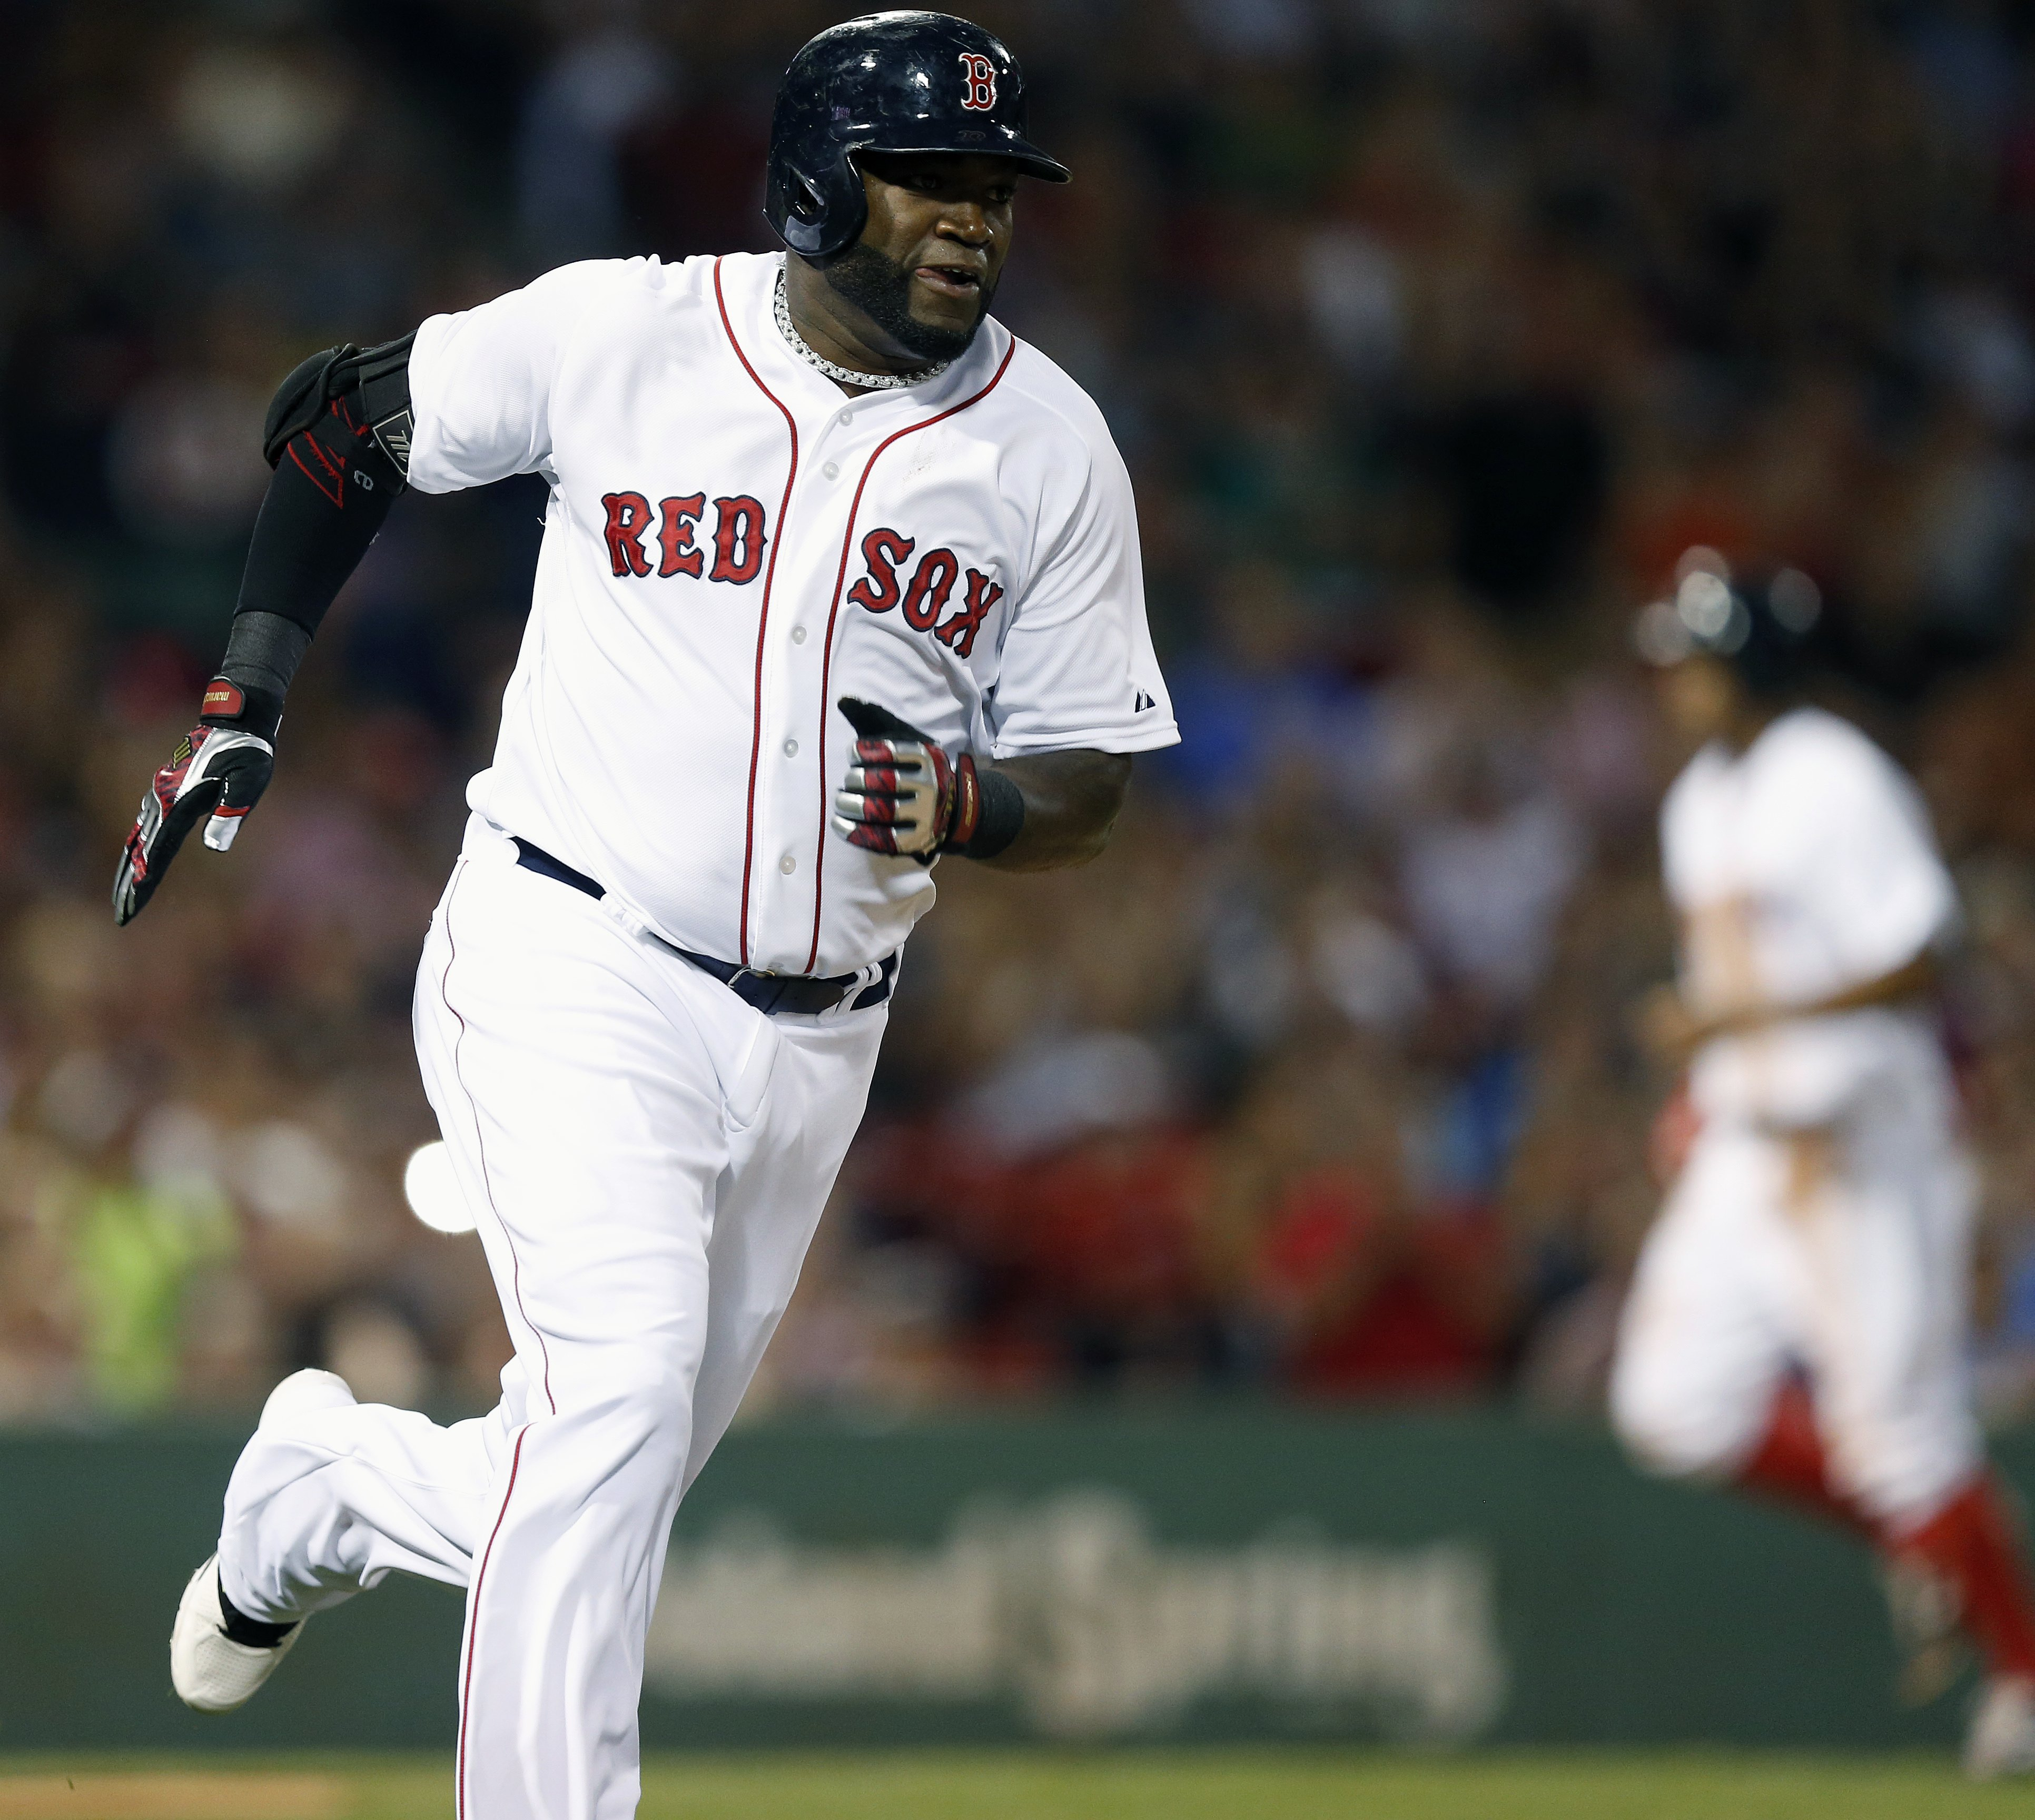 Boston Red Sox's David Ortiz runs out his RBI-double that scored Xander Bogaerts, right, during the first inning of a baseball game against the Chicago White Sox in Boston, Thursday, July 30, 2015. (AP Photo/Michael Dwyer)